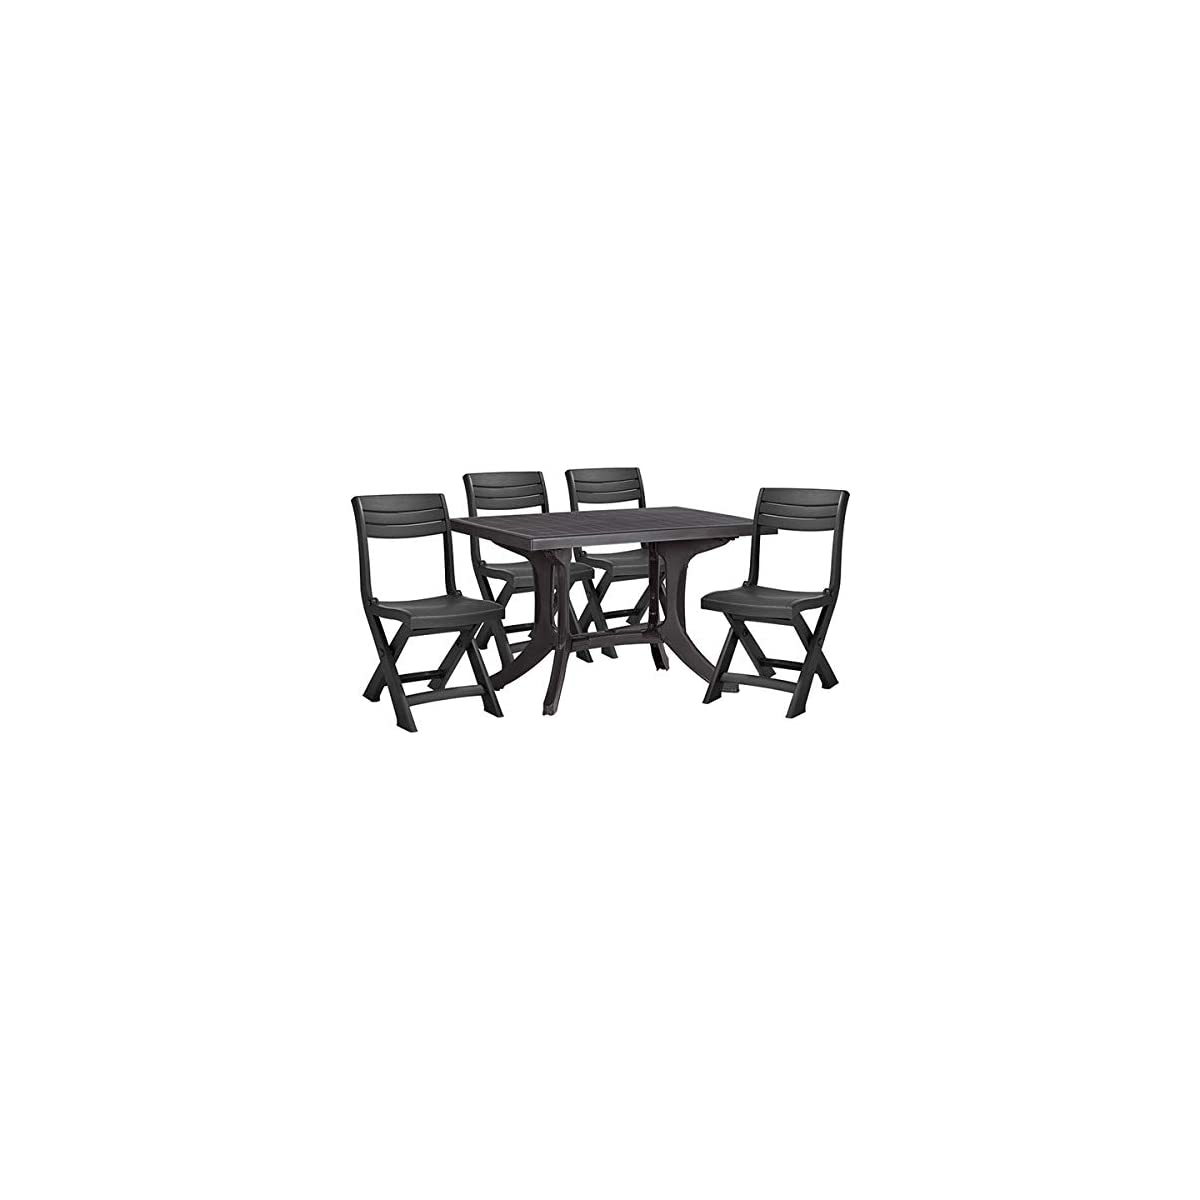 Garden & Outdoors Allibert Funky 5 Pc Folding Table & Chair Set Garden Furniture Set Bistro Table & Chair Black